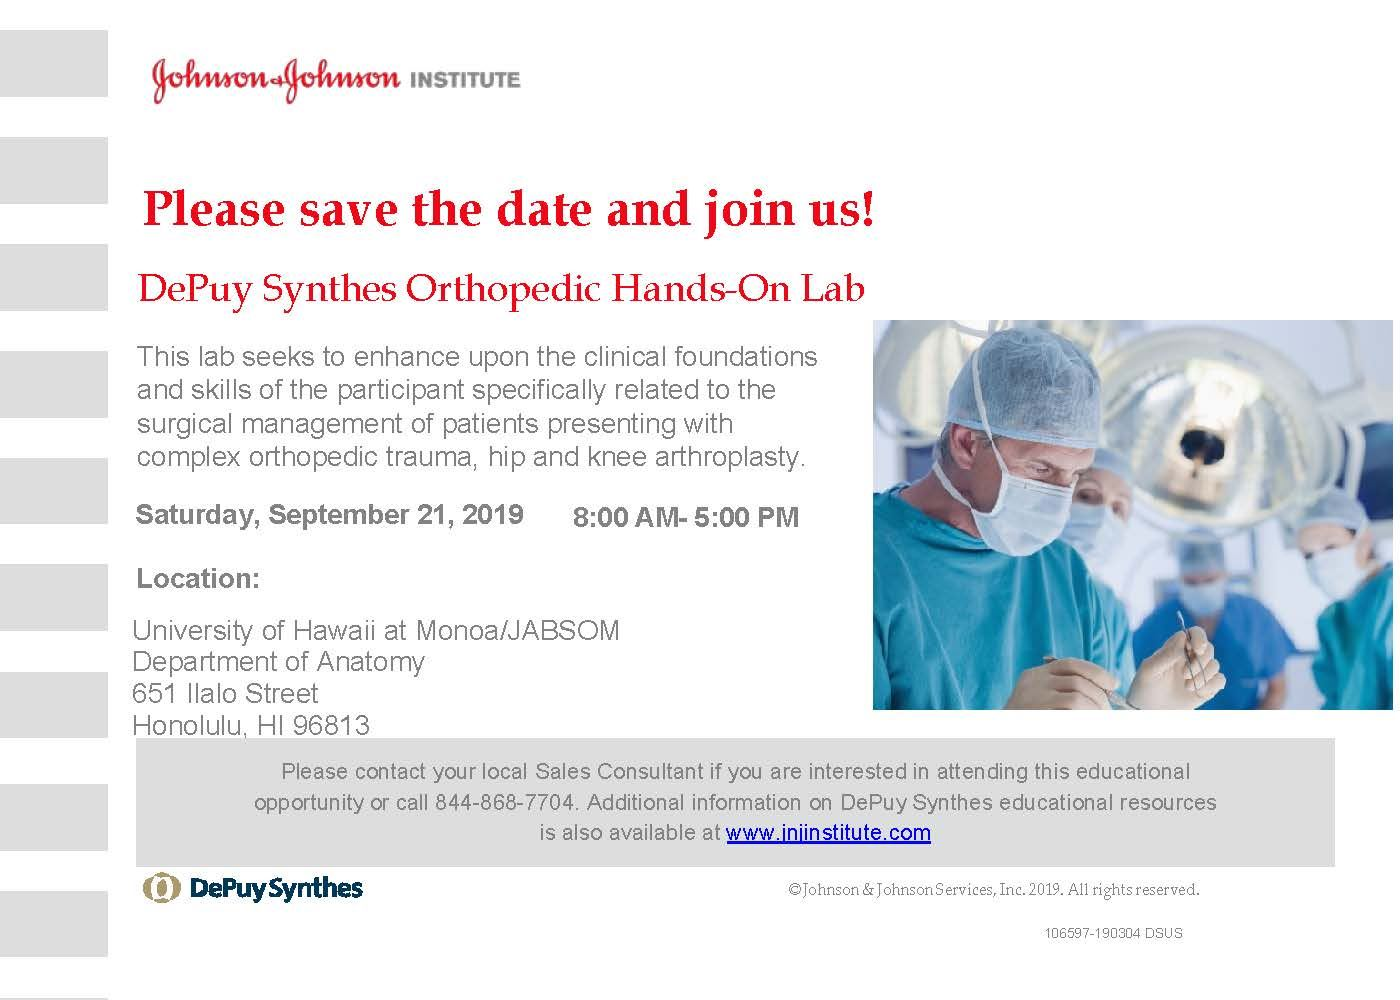 Hawaii Orthopaedic Association - DePuy Synthes Orthopedic